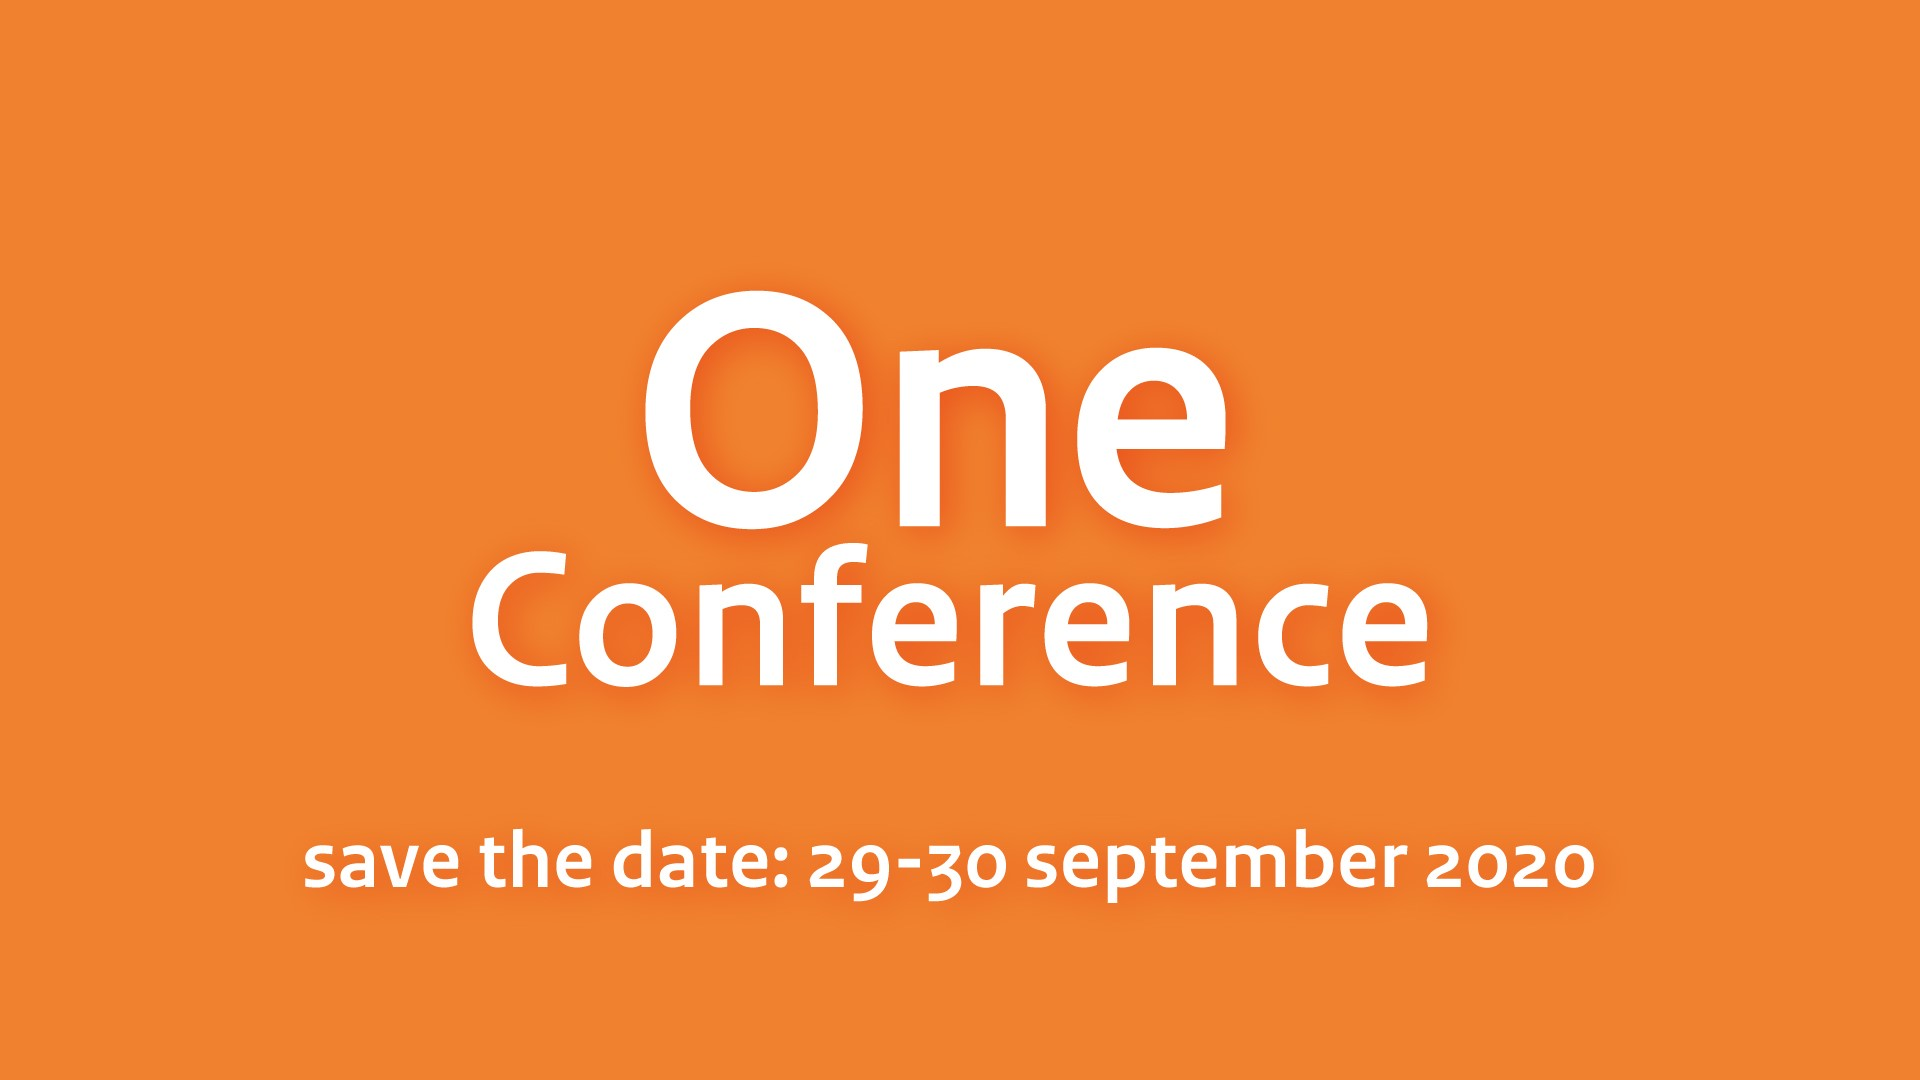 One Conference 2020 save the date